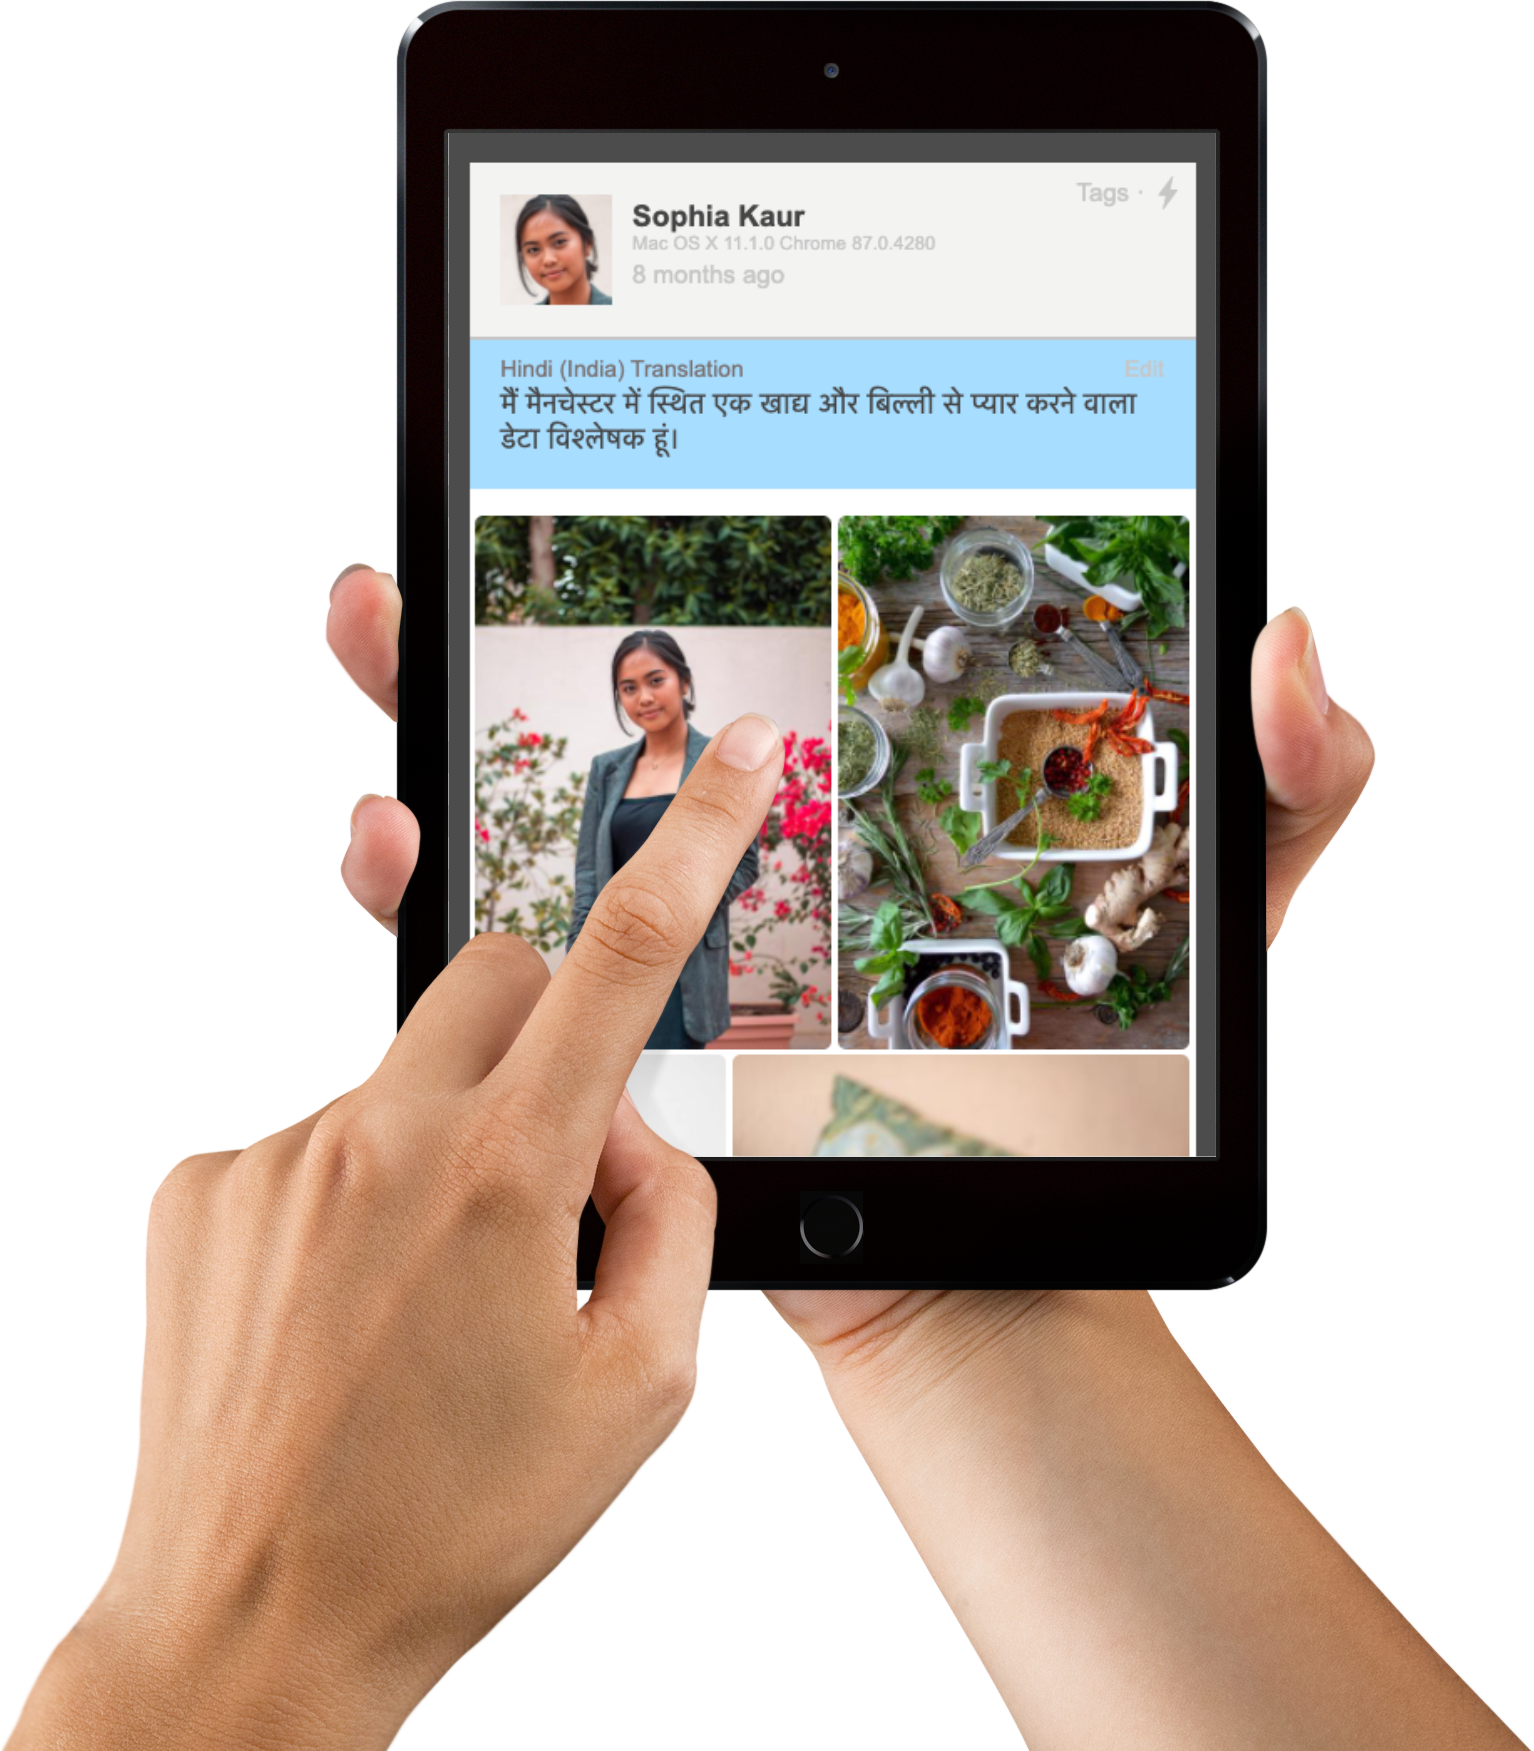 Mobile device demonstrating translation from Hindi